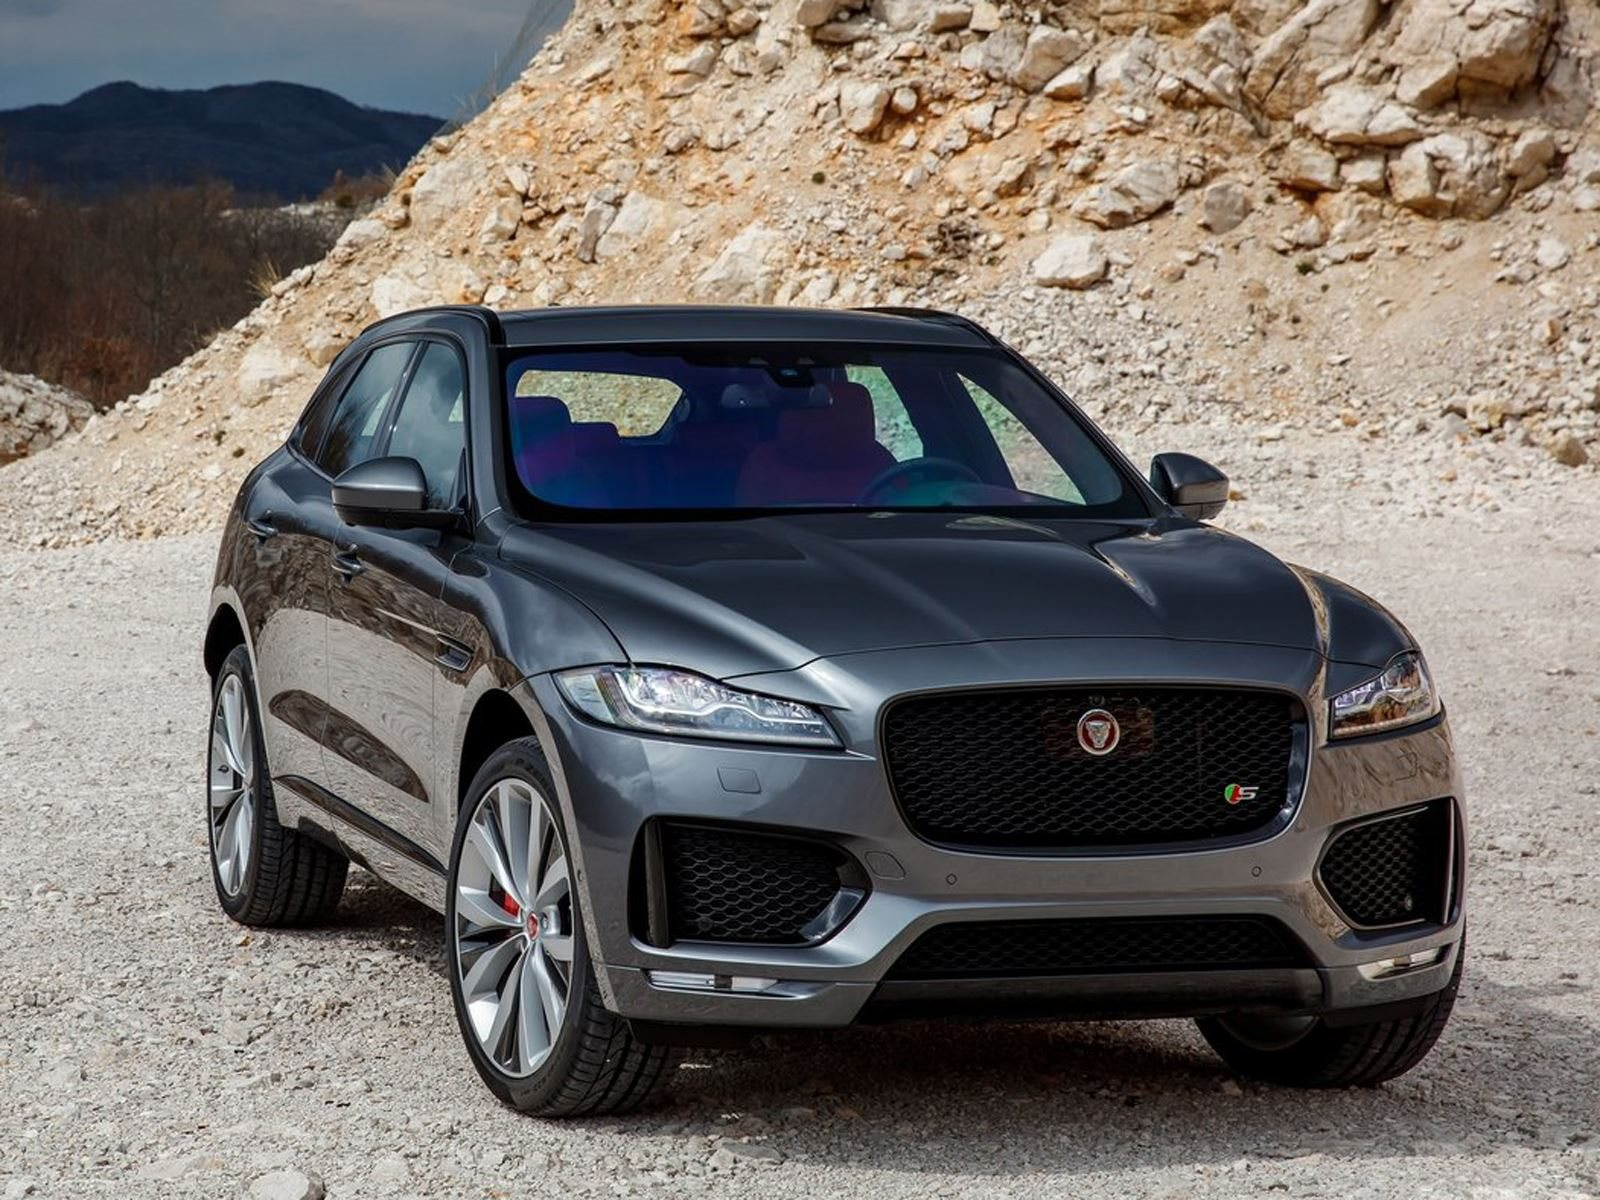 96 New 2020 Jaguar Suv Specs and Review